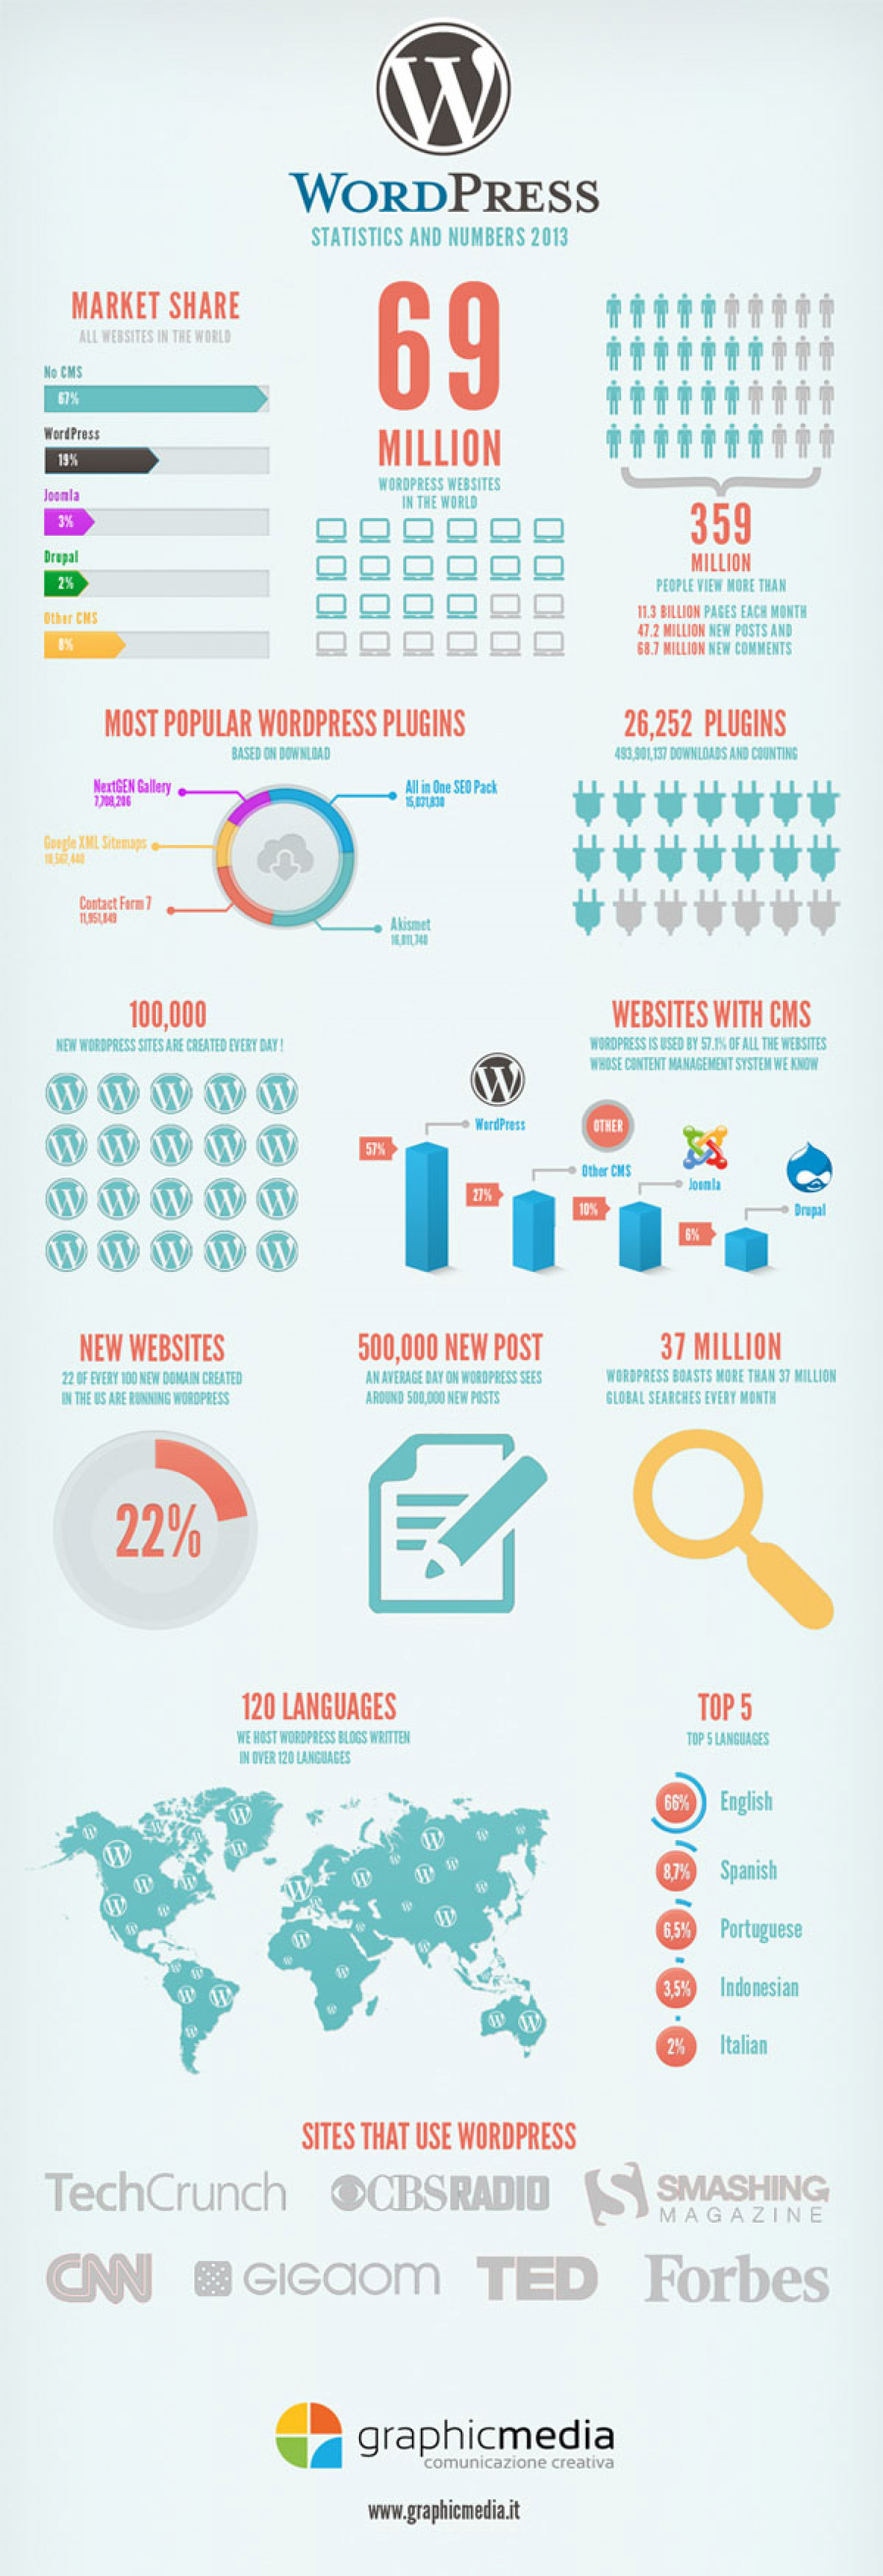 Wordpress Statistics and Numbers 2013 Infographic